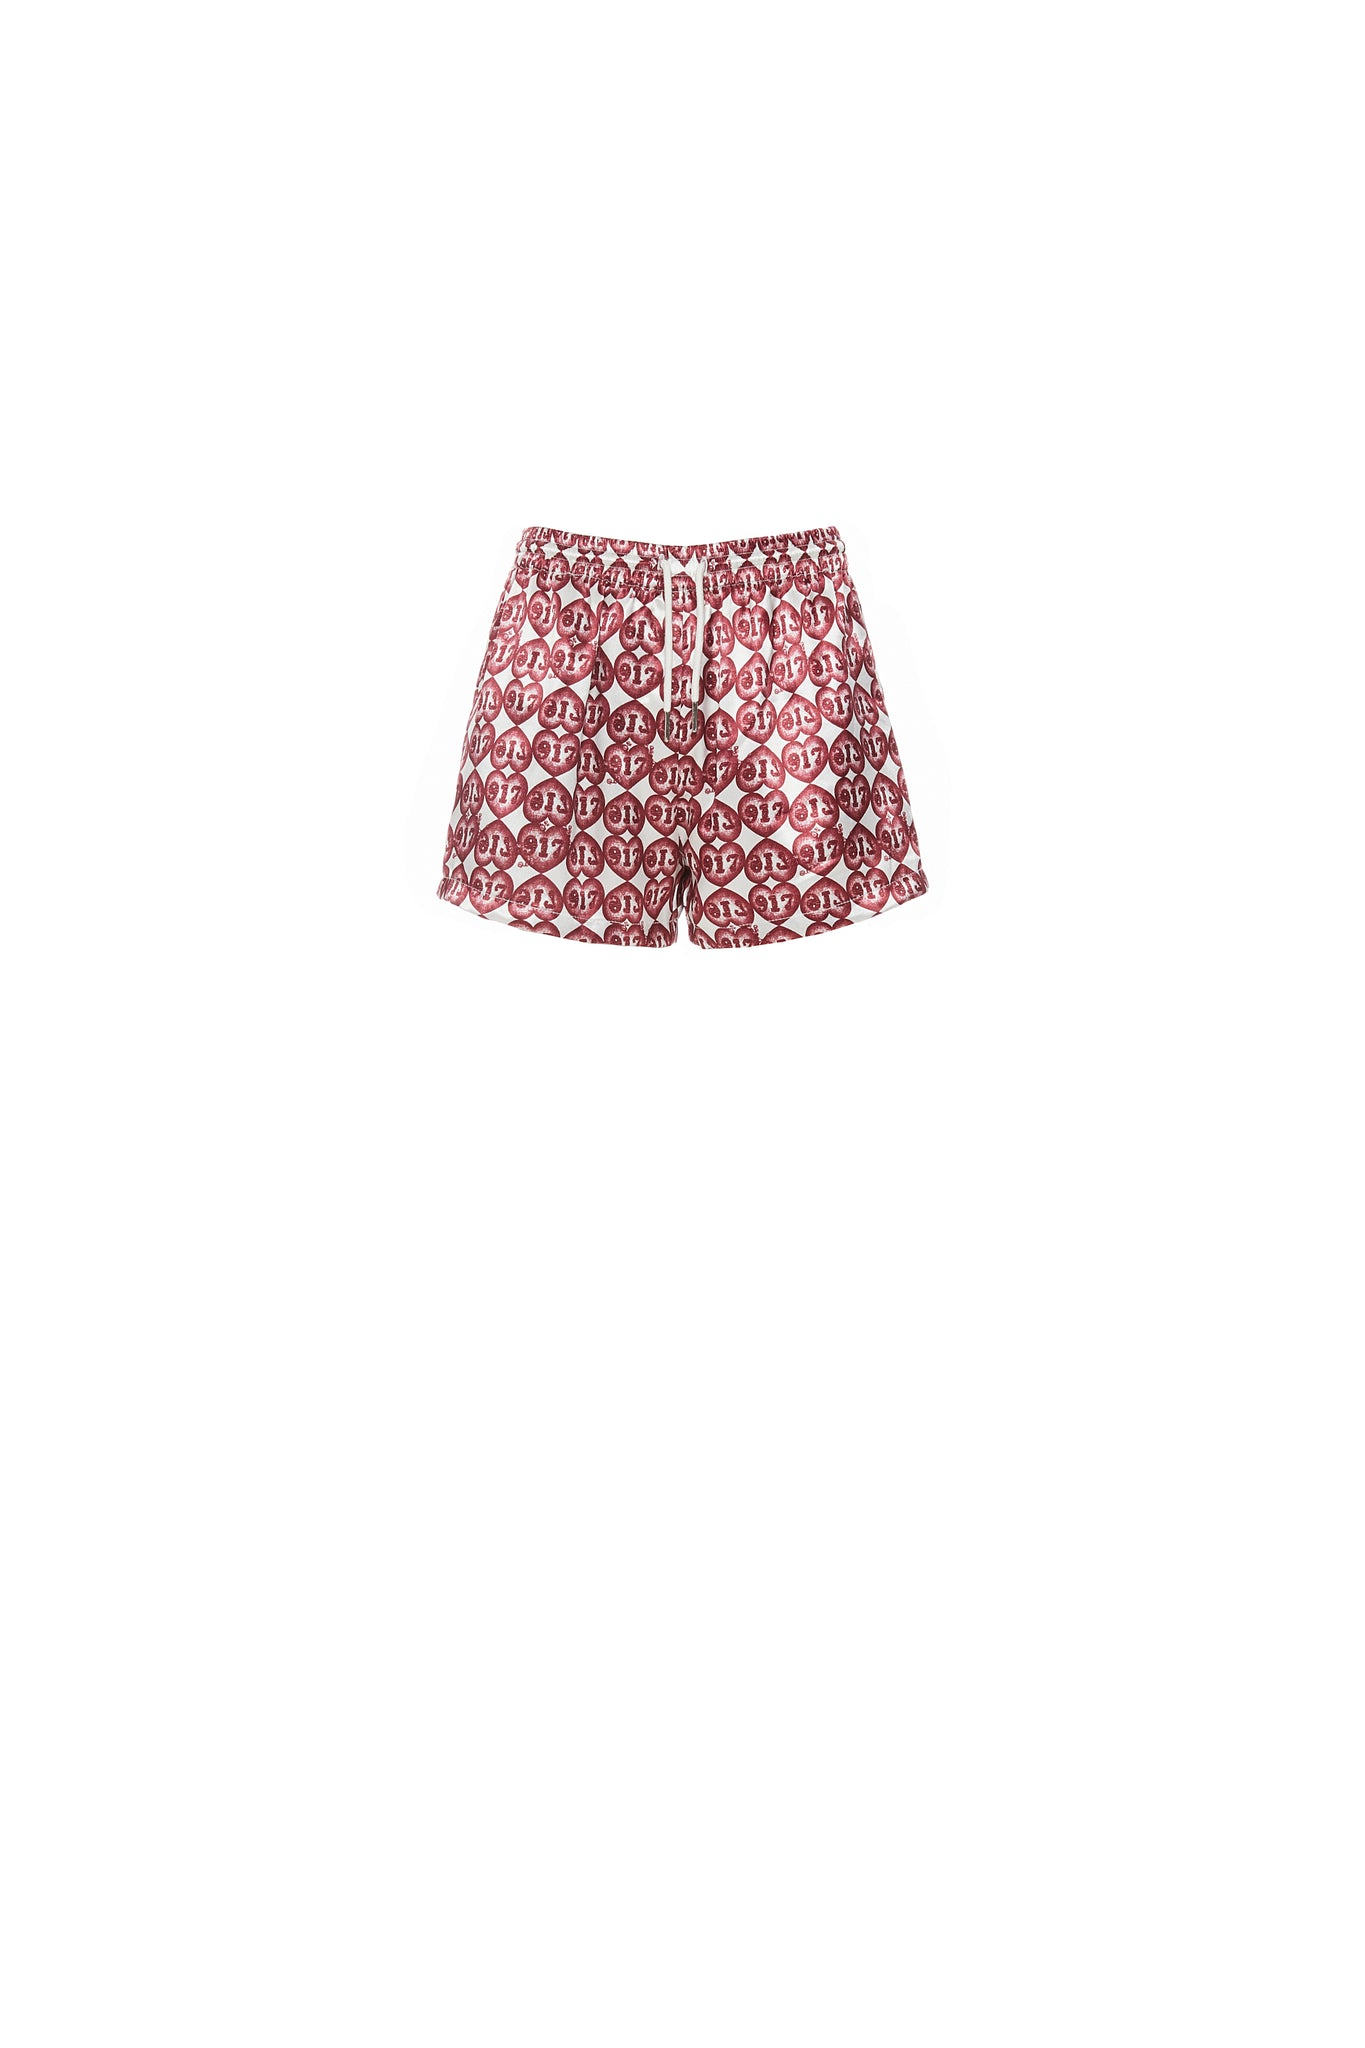 Shorts, 917 Heart Print, Red